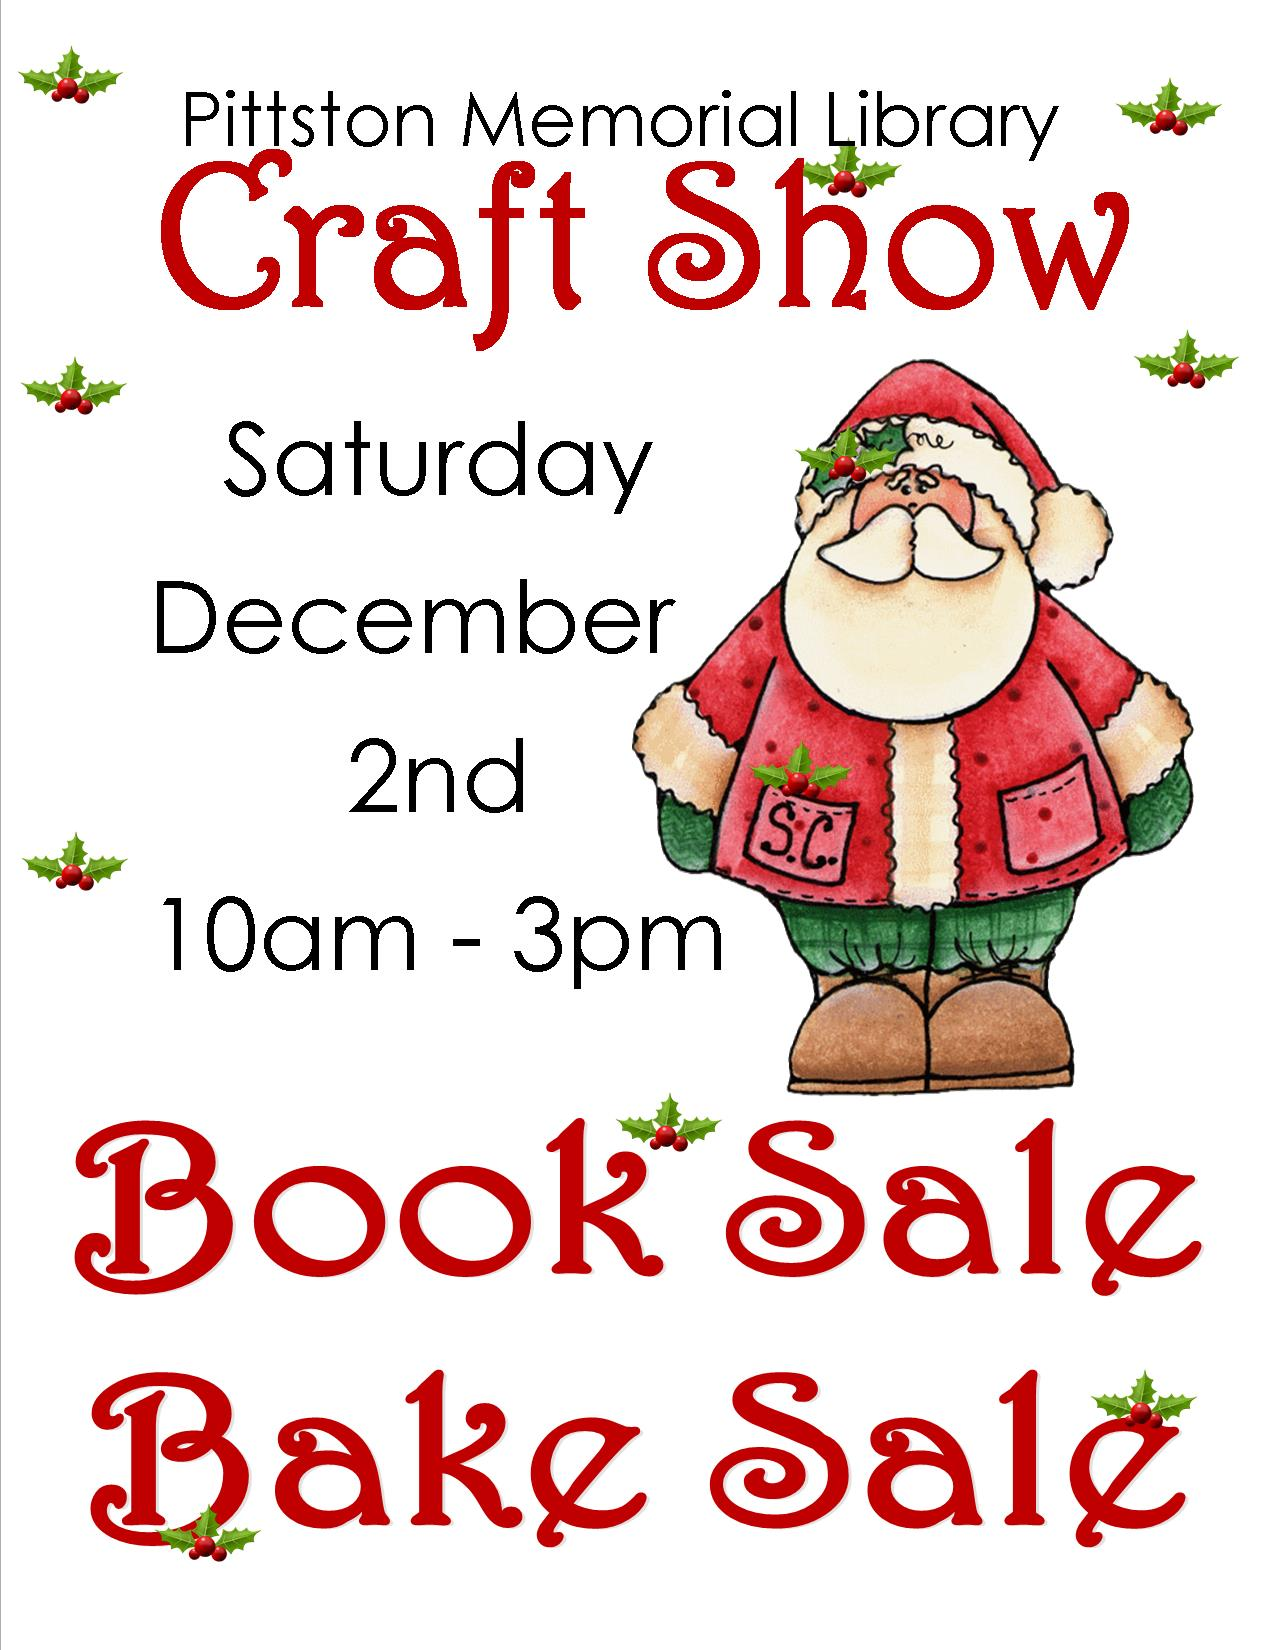 Pittston Memorial Library Craft Show